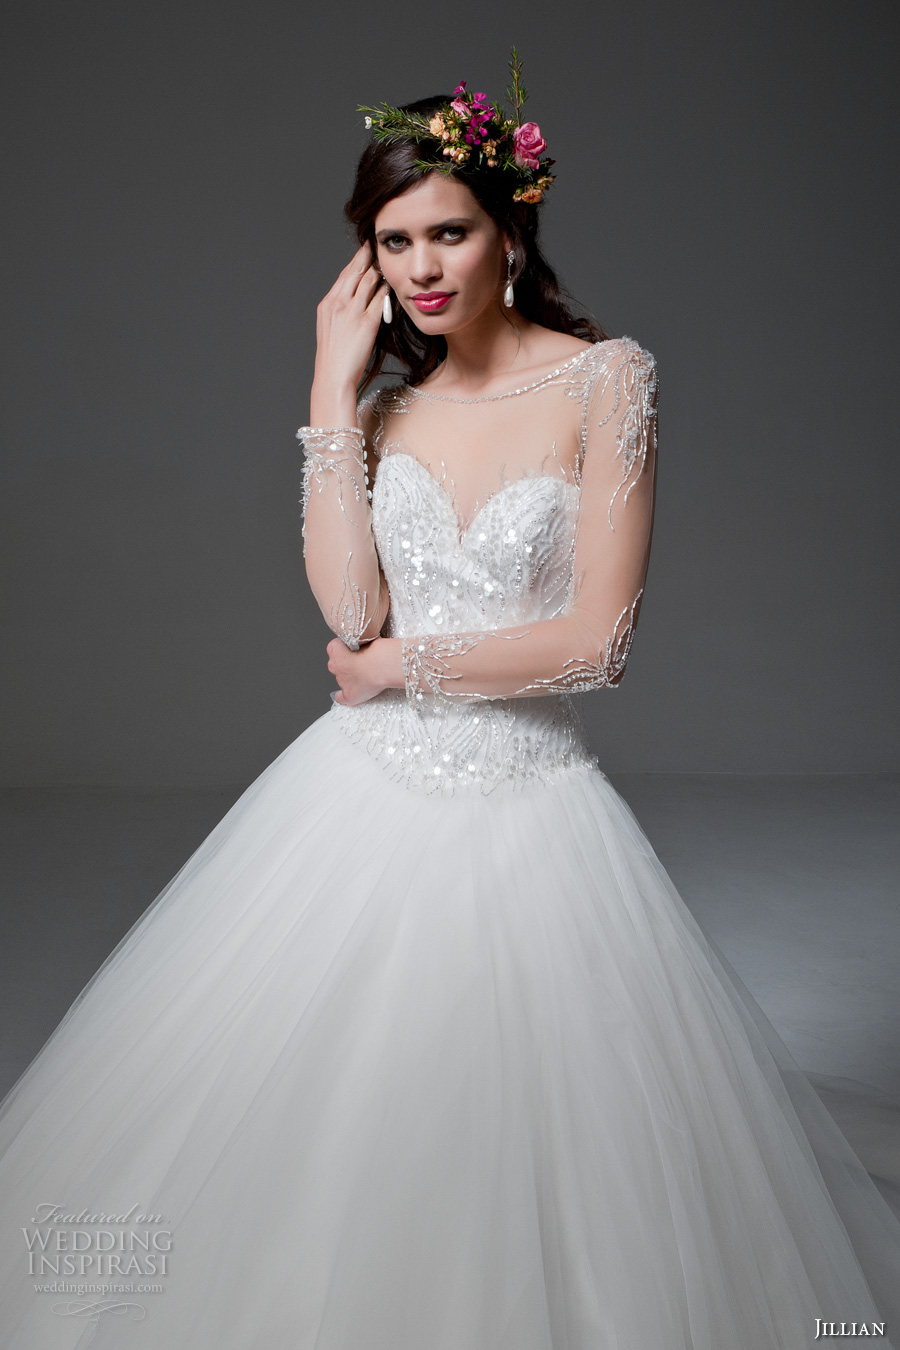 jillian 2017 bridal sheer long sleeves illusion bateau sweetheart neckline heavily embellished bodice tulle skirt princess ball gown wedding dress sheer back royal train (maura) zv